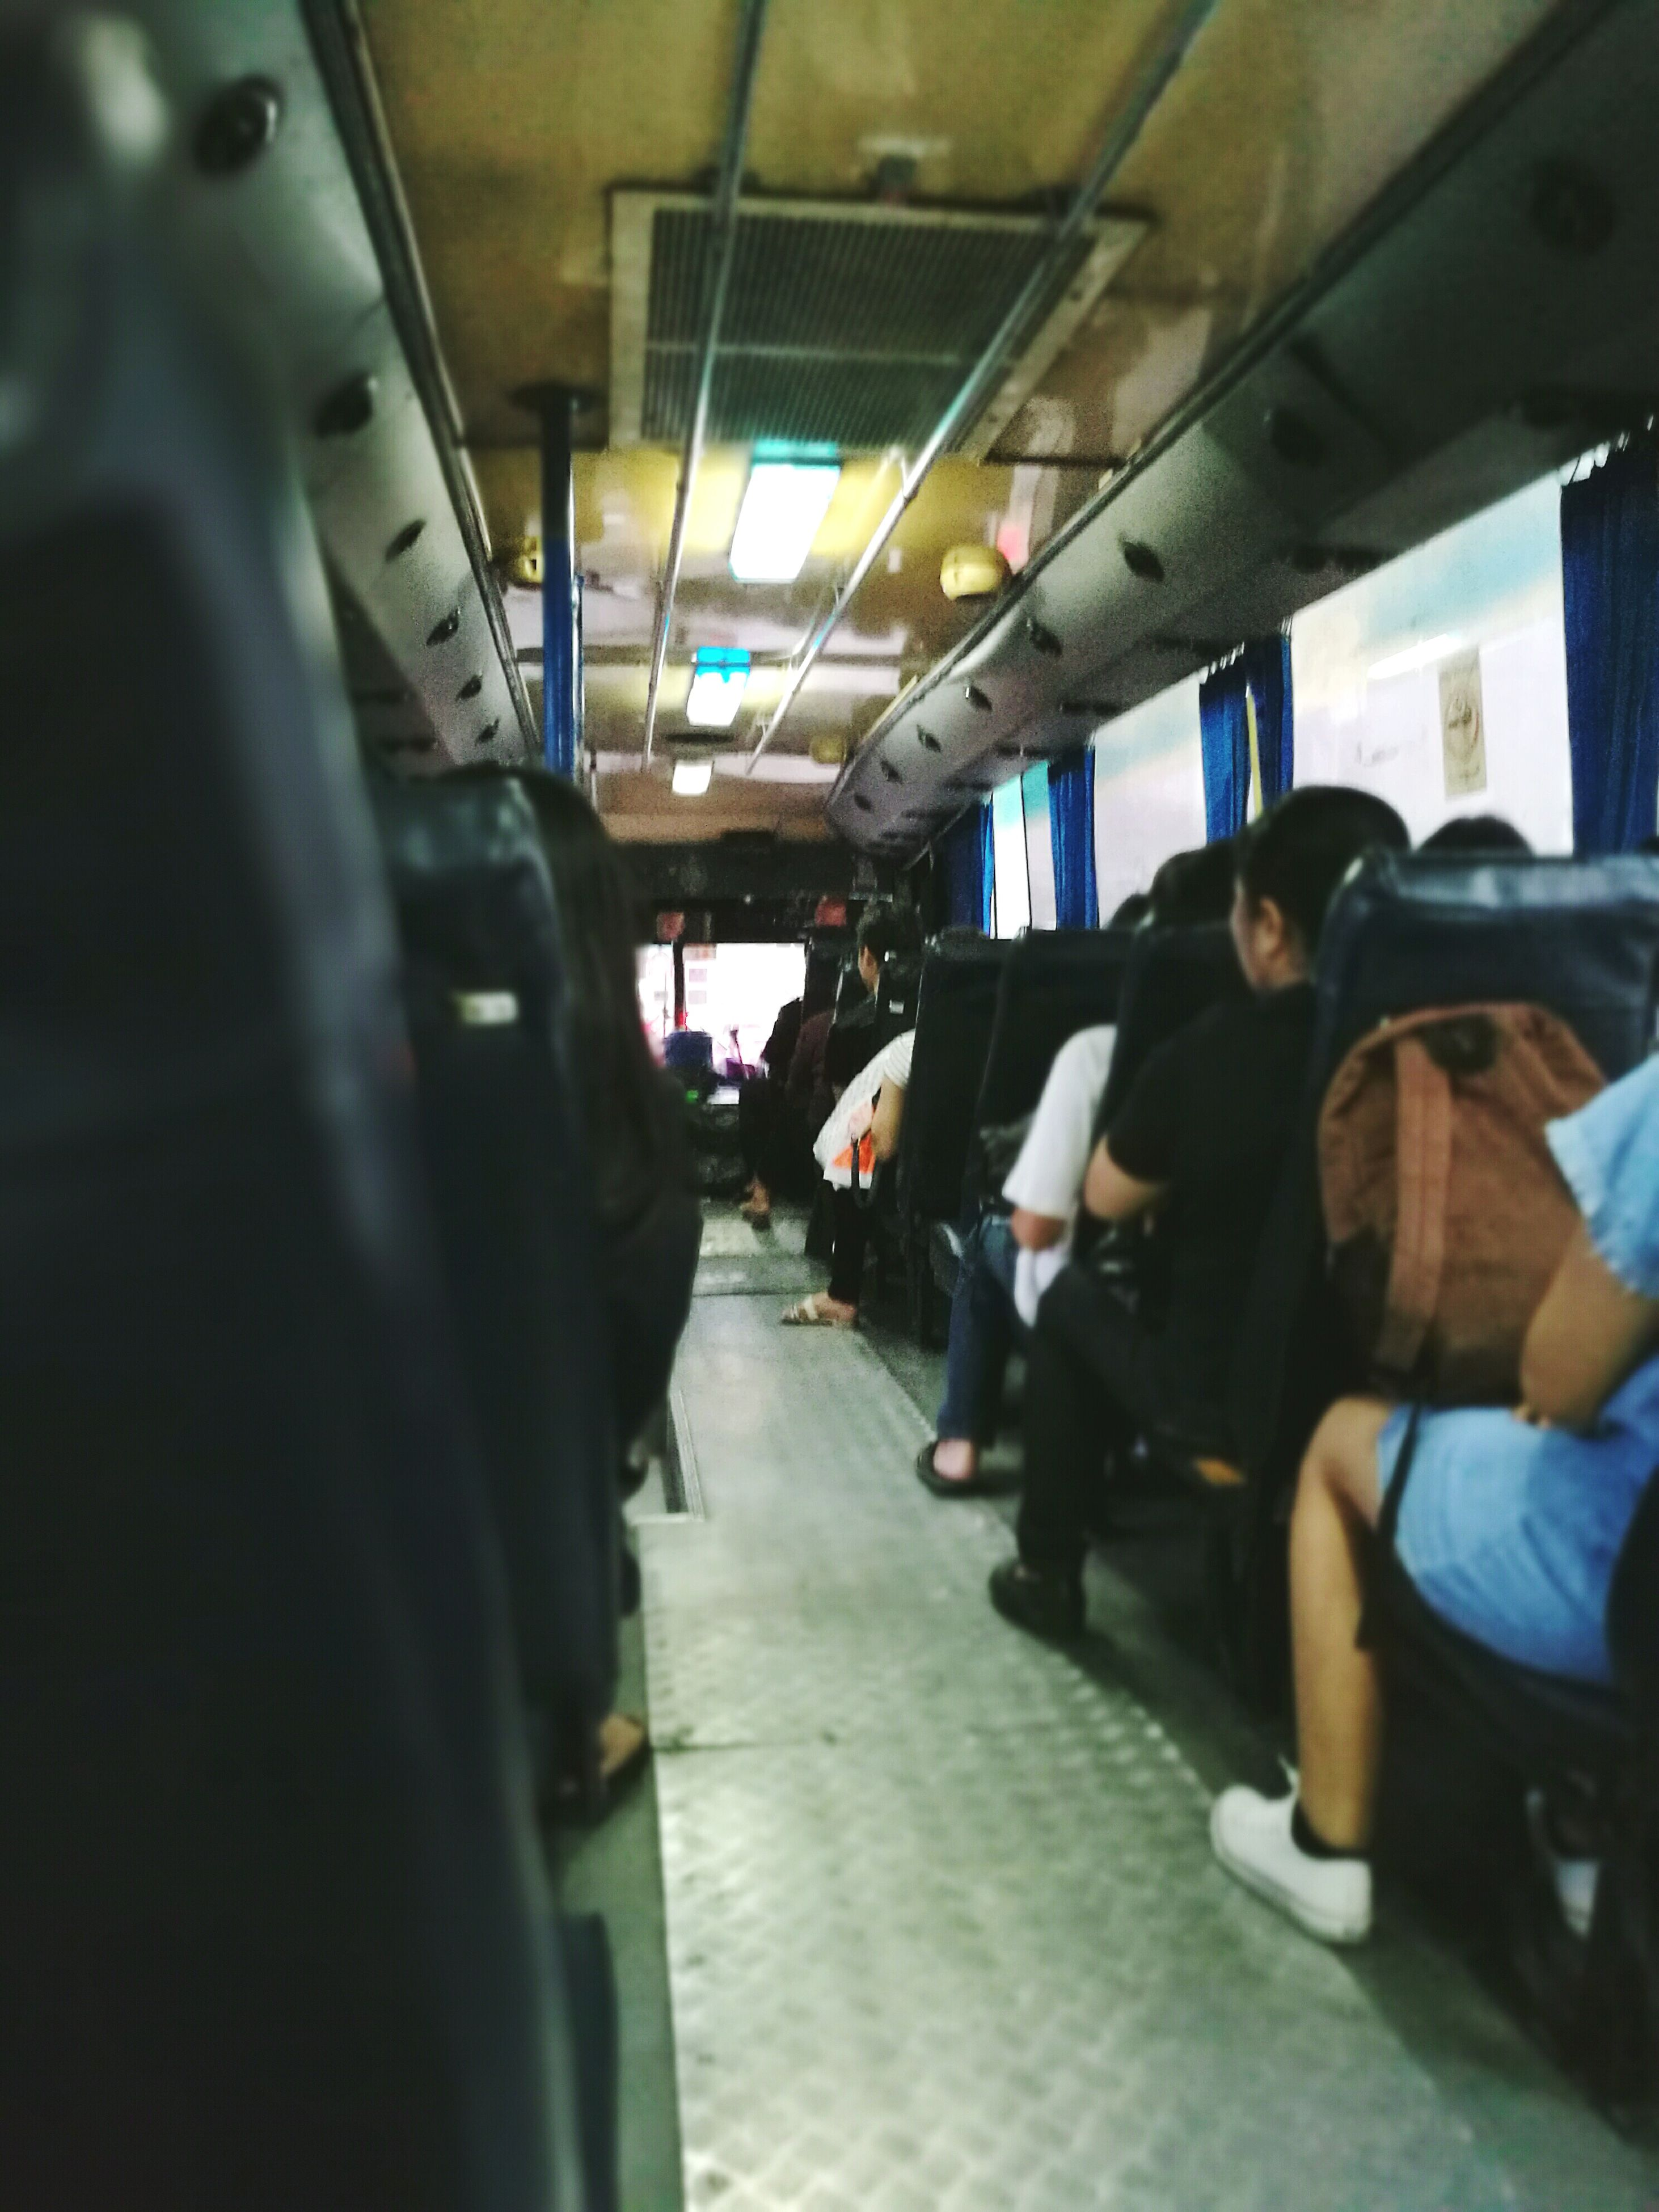 transportation, mode of transport, passenger, vehicle interior, real people, travel, public transportation, vehicle seat, large group of people, lifestyles, indoors, journey, women, men, train interior, people, adults only, day, adult